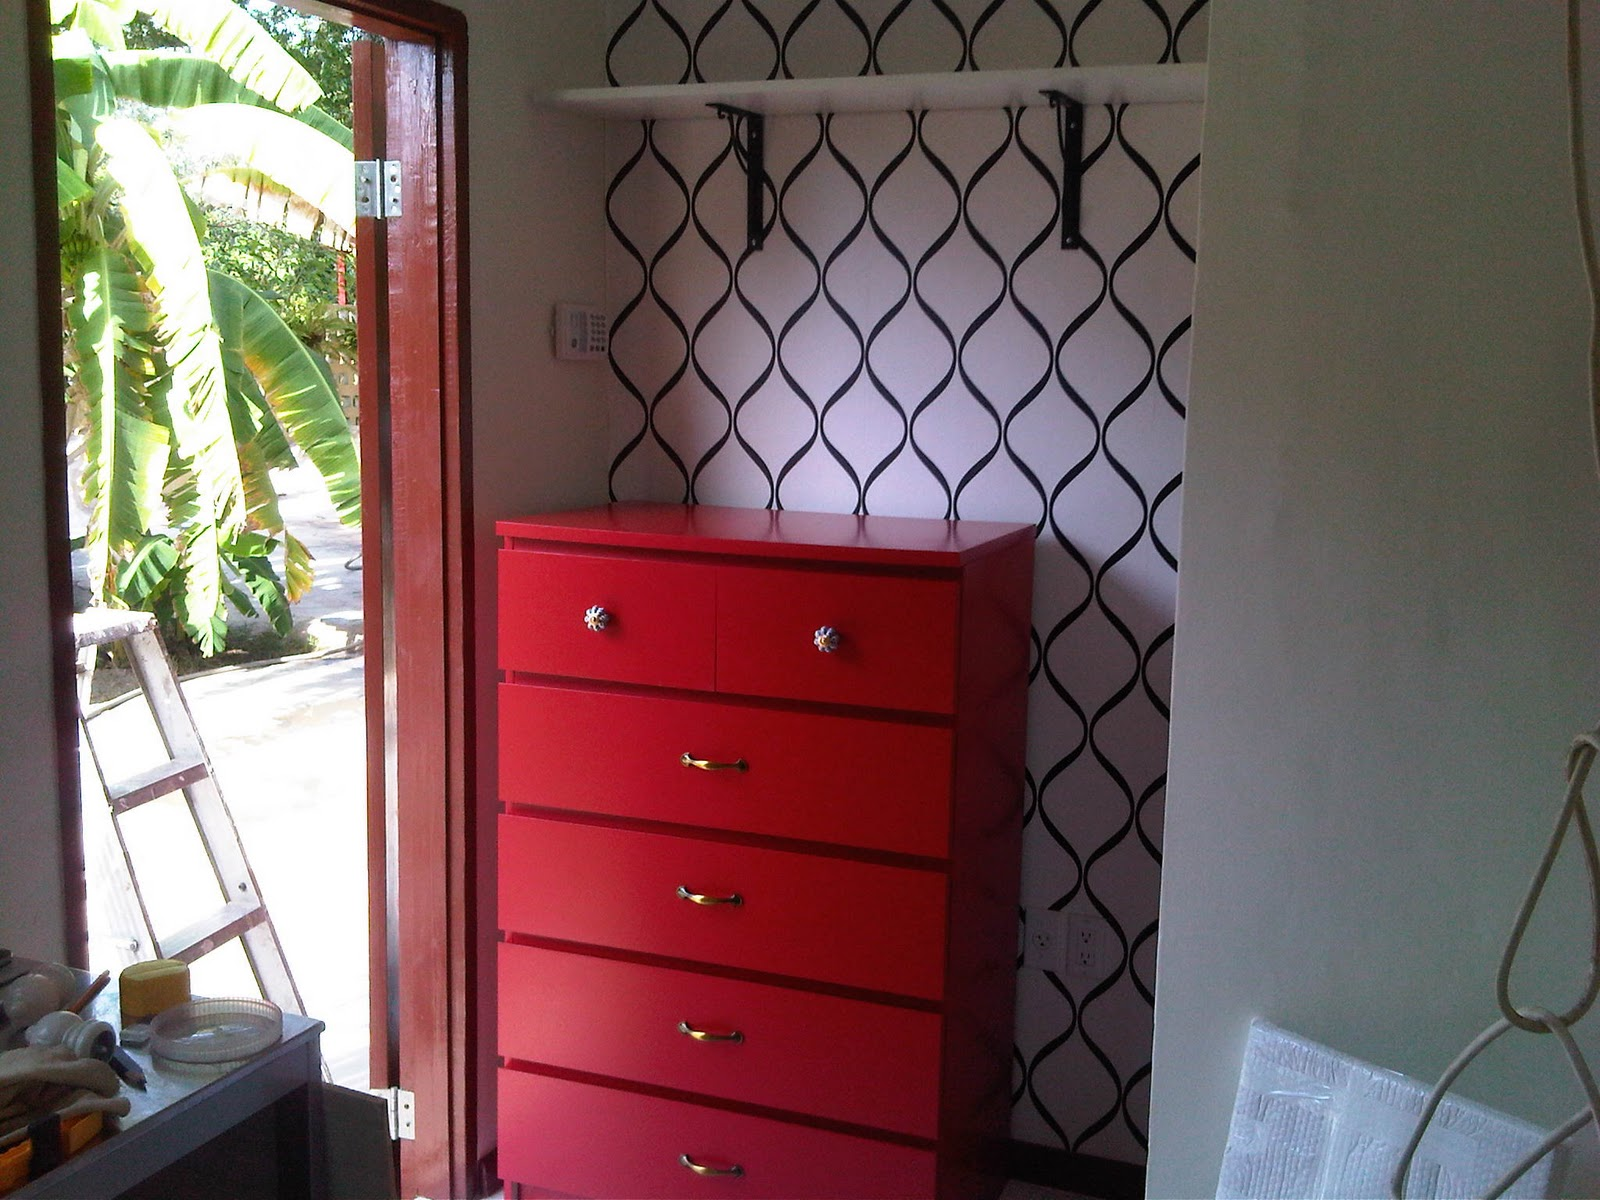 Diy Room Divider Disappeared